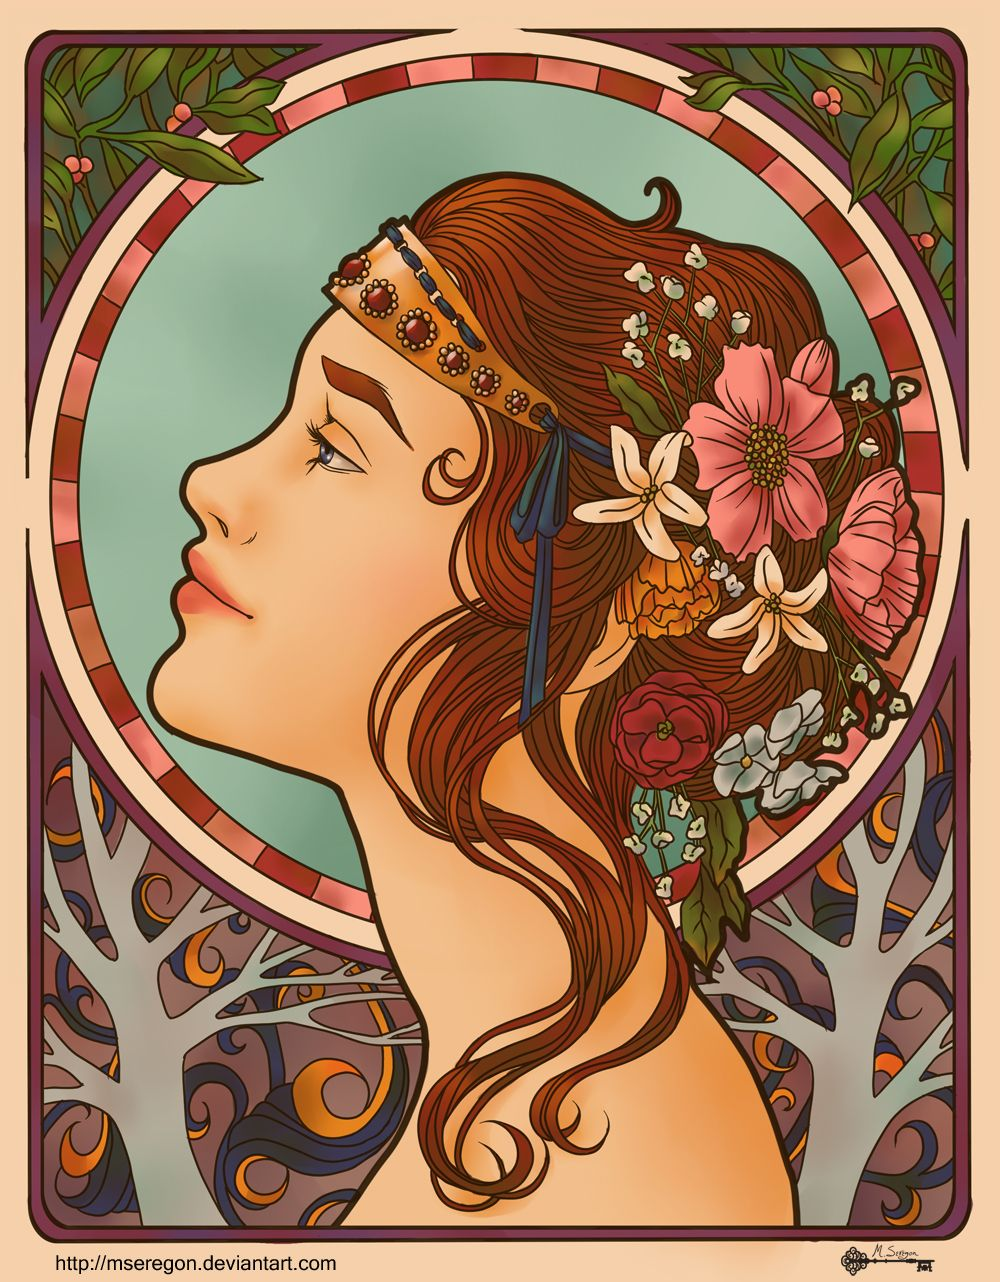 Jugendstil Kunst Art Nouveau Attempt 1 By Mseregon Deviantart On Deviantart